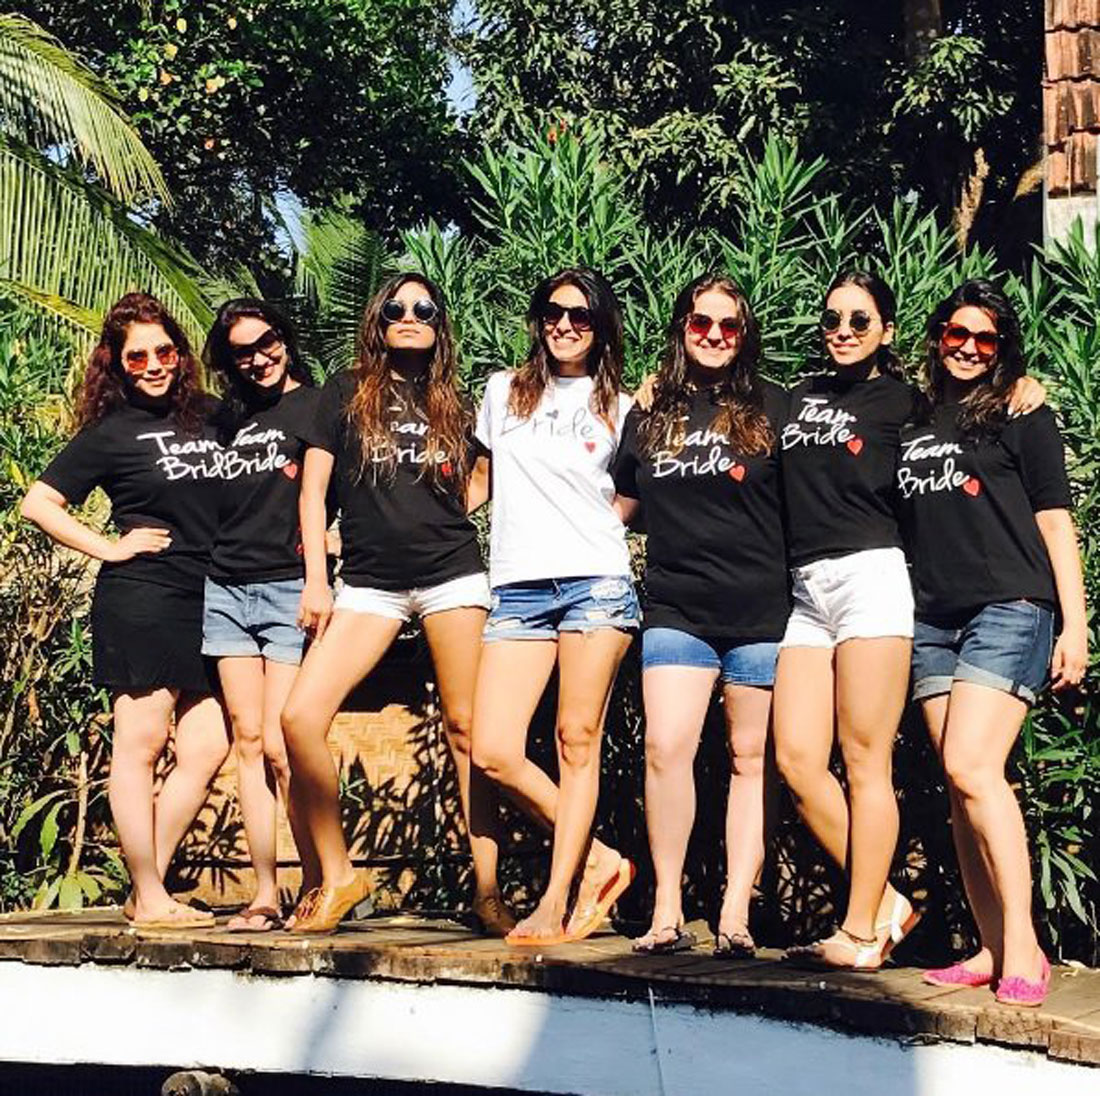 Kishtwar Merchant with her friend at her goa bachelorette party| Bachelorette party ideas